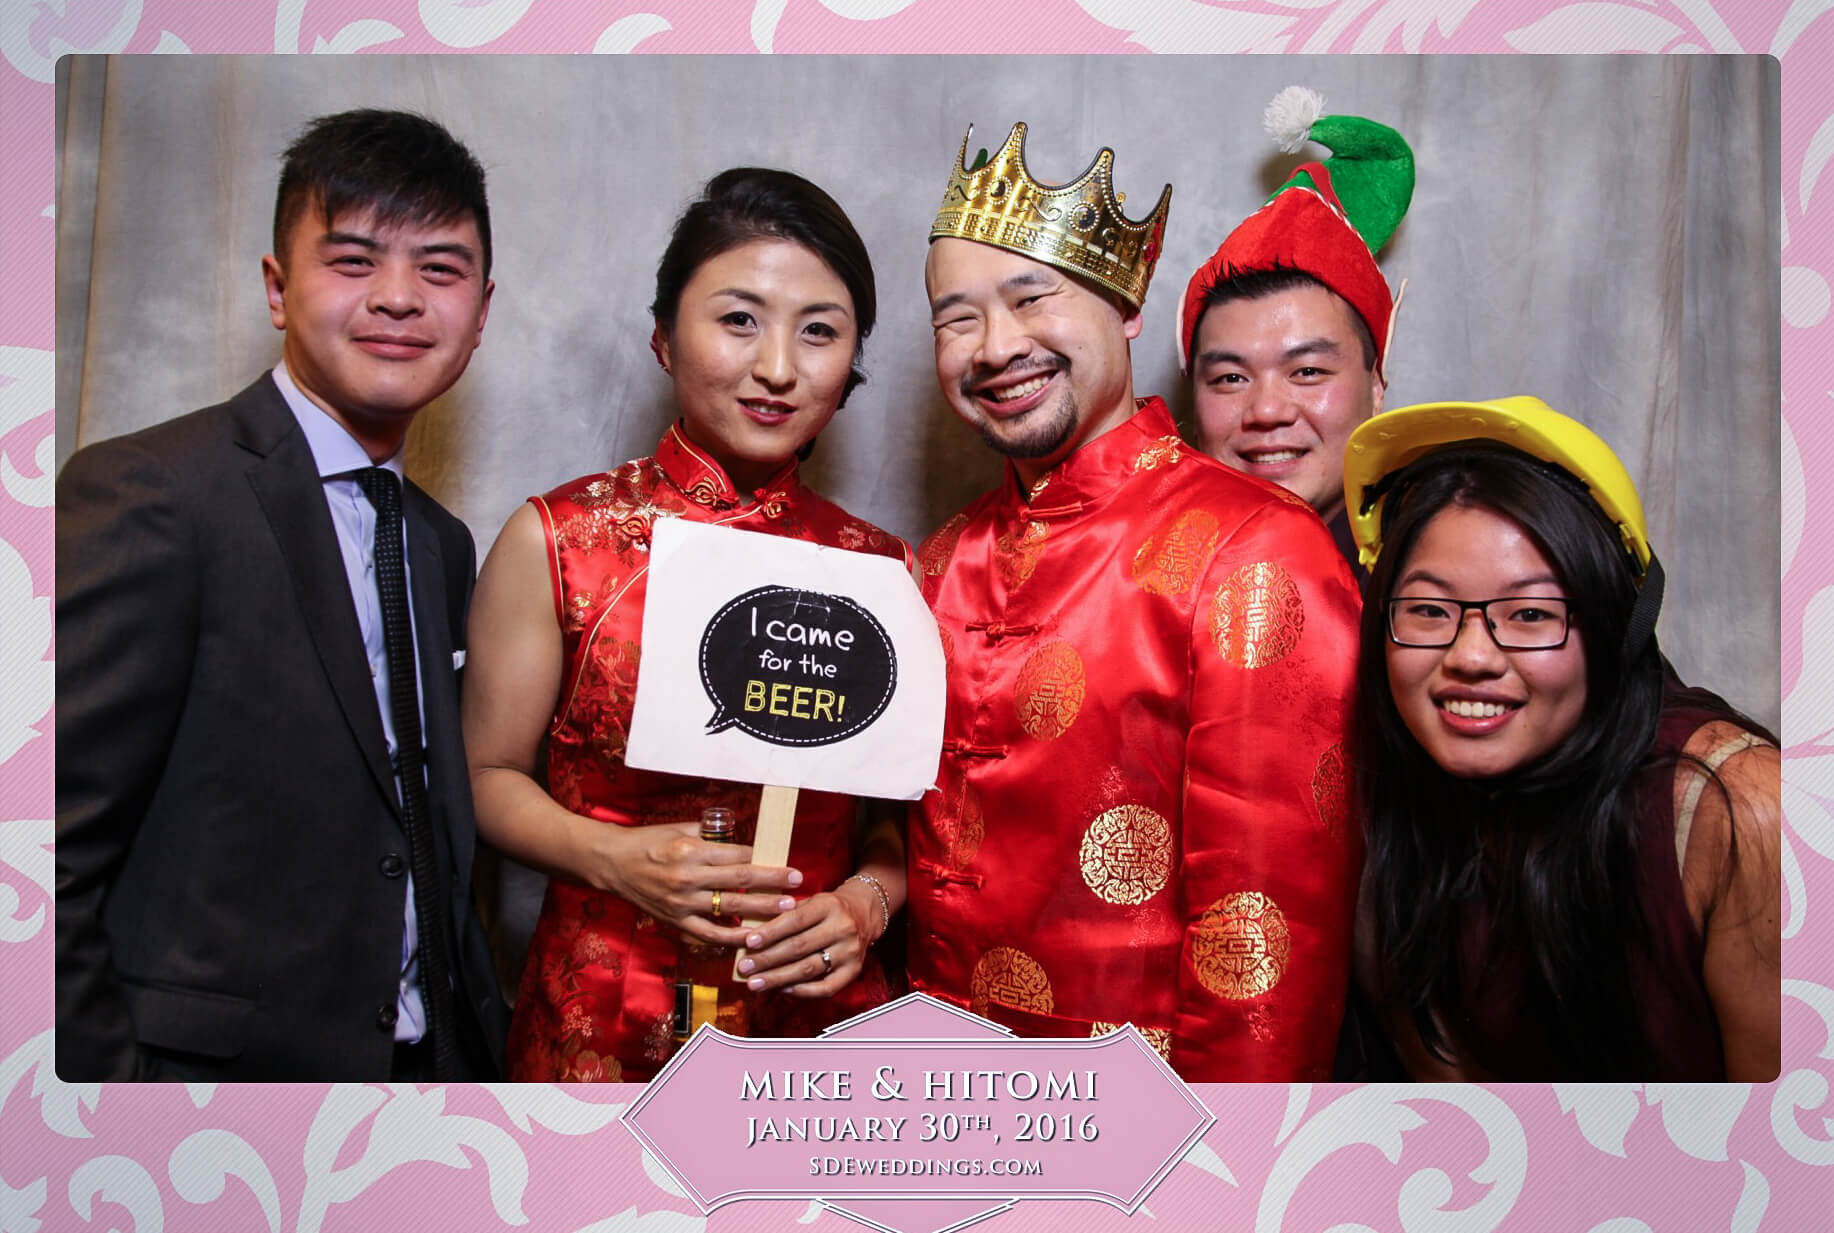 Toronto Spring Villa Wedding Photo Booth Rental 1